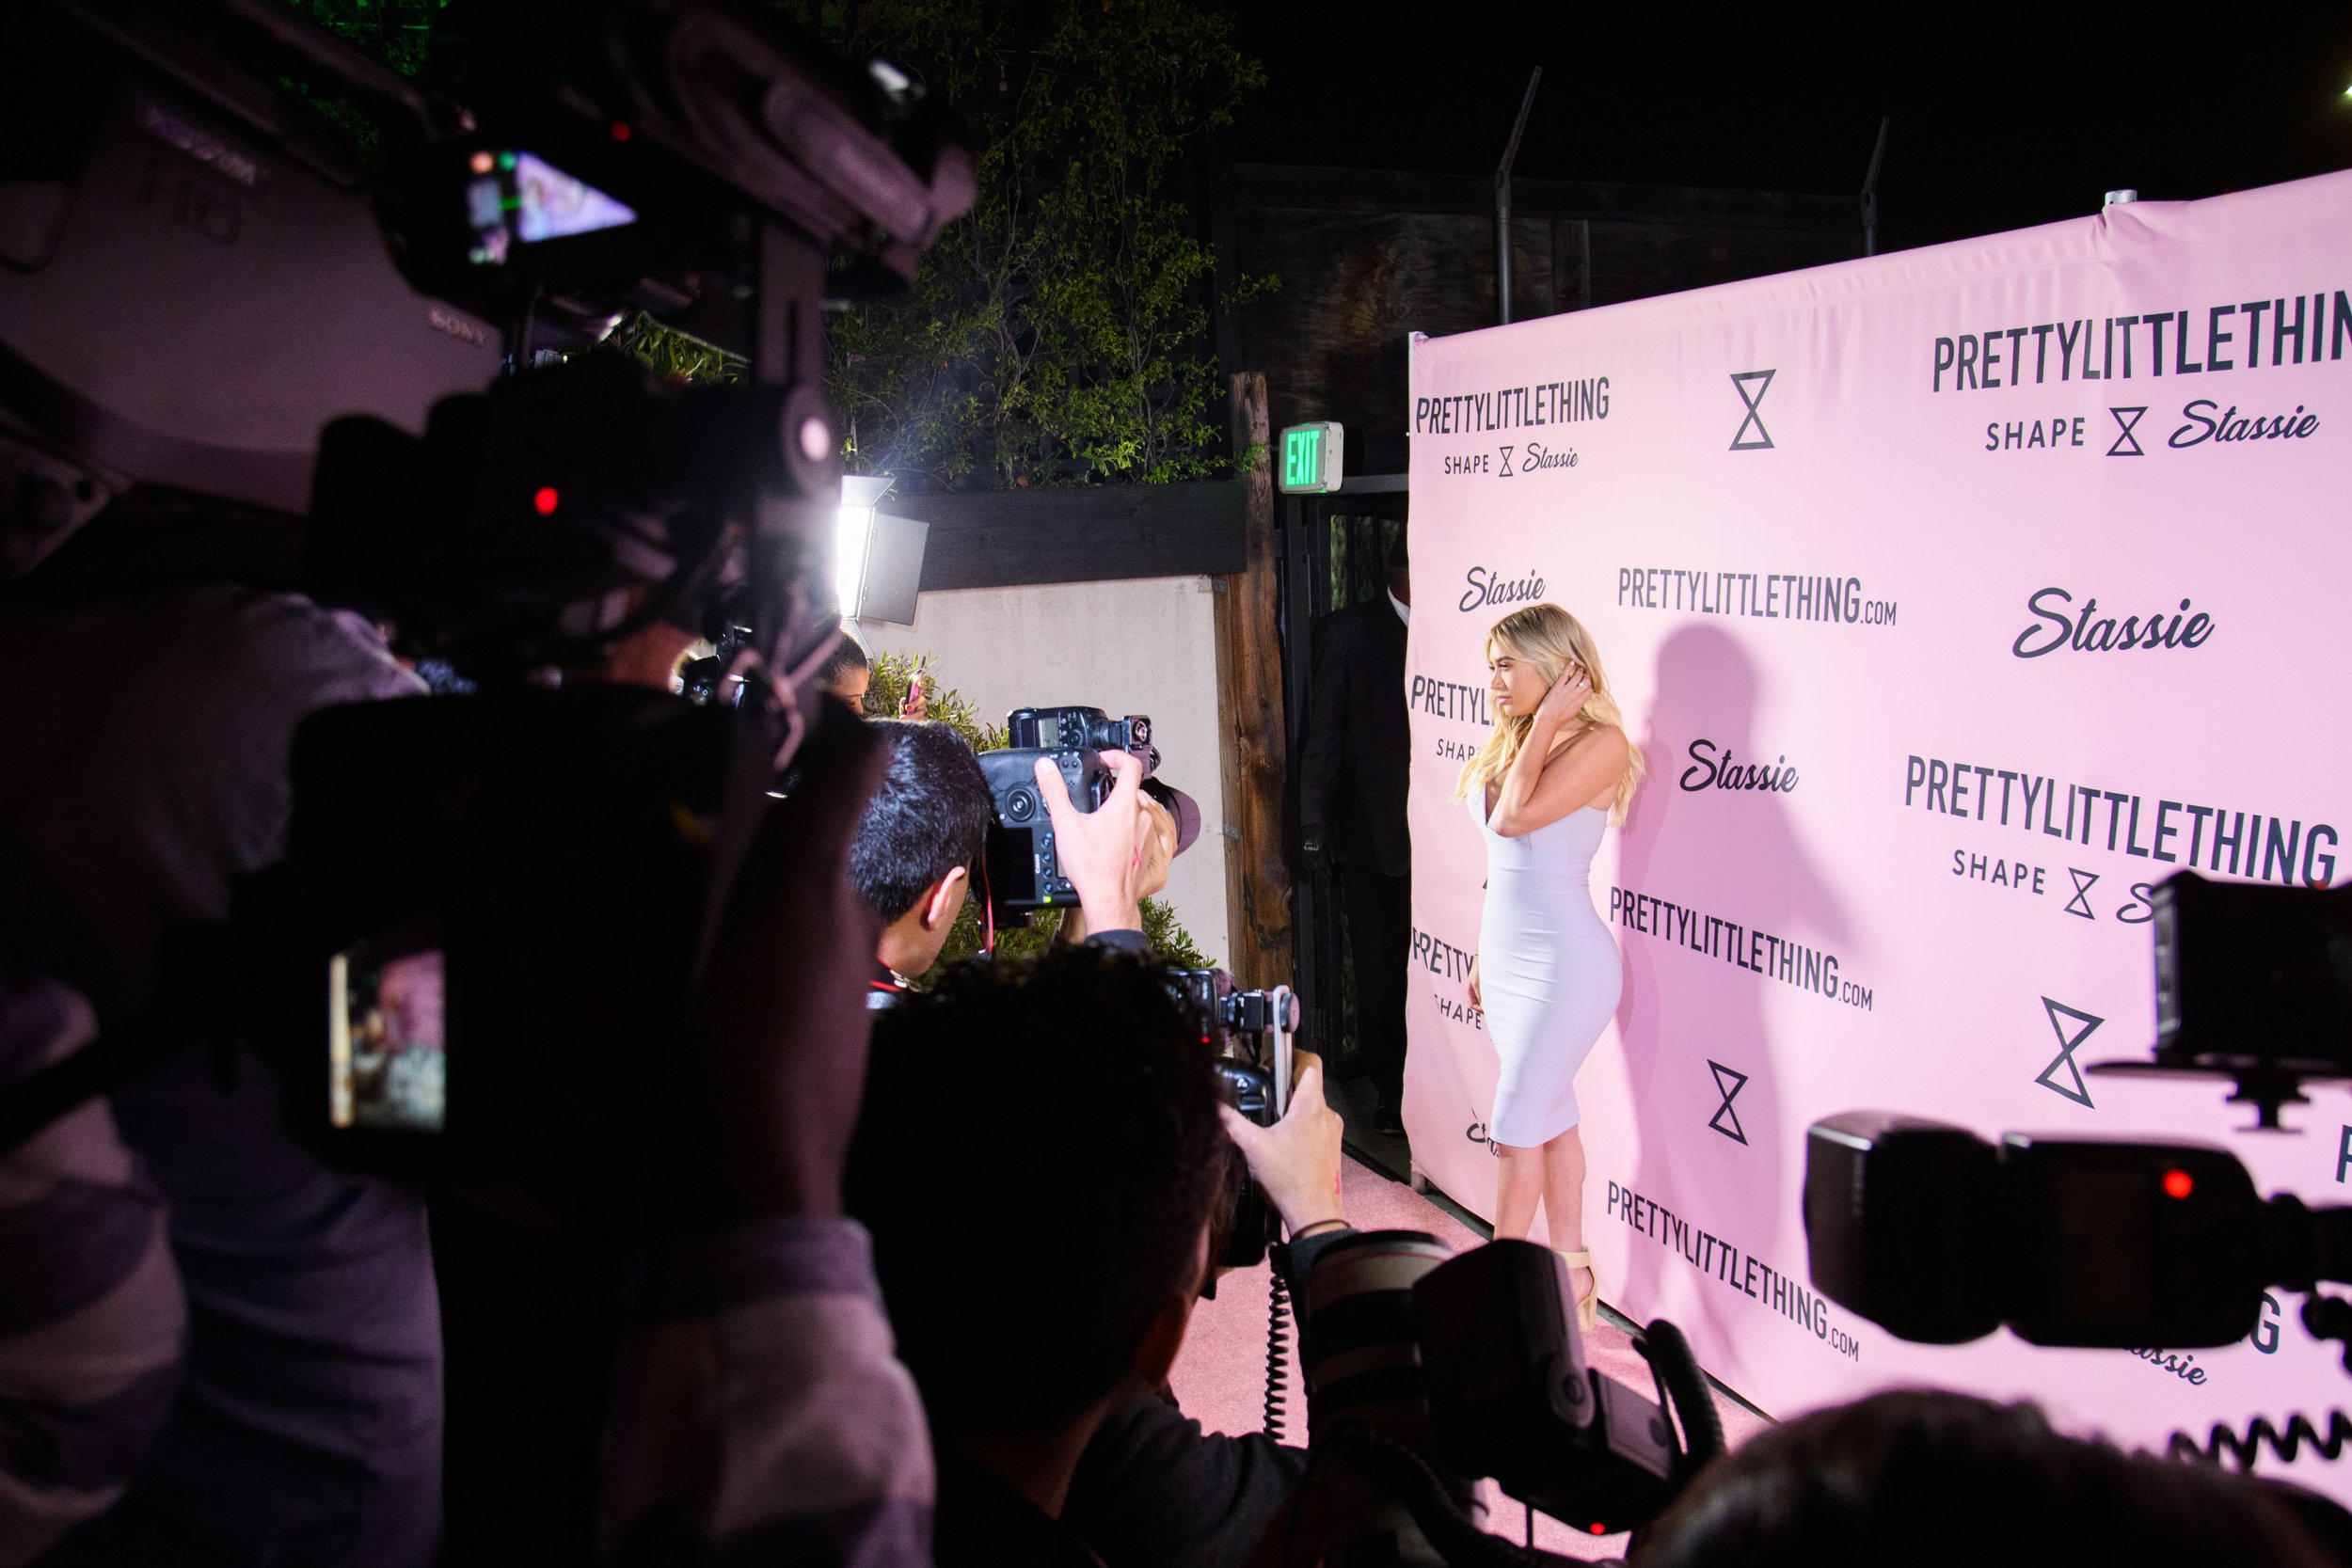 PrettyLittleThing New PLT Shape Collection with Stassie Celebrity Launch Party Stassiebaby stopping for a pic.jpg